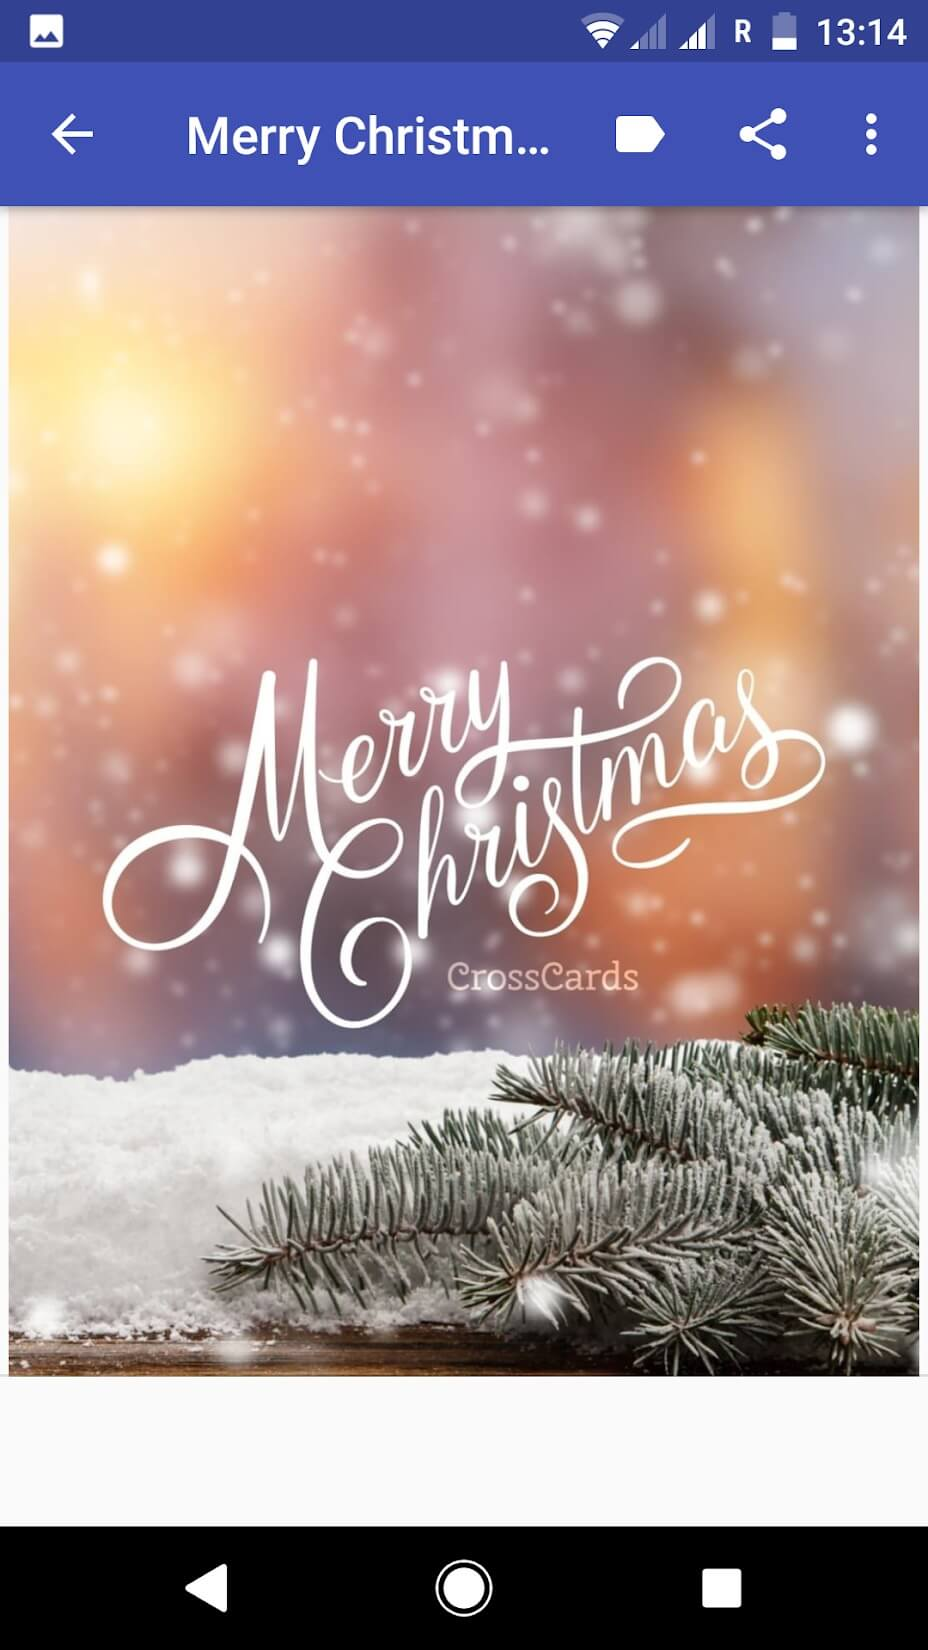 Christmas Clipart Wallpaper – Merry Christmas Wallpapers - Preview 2